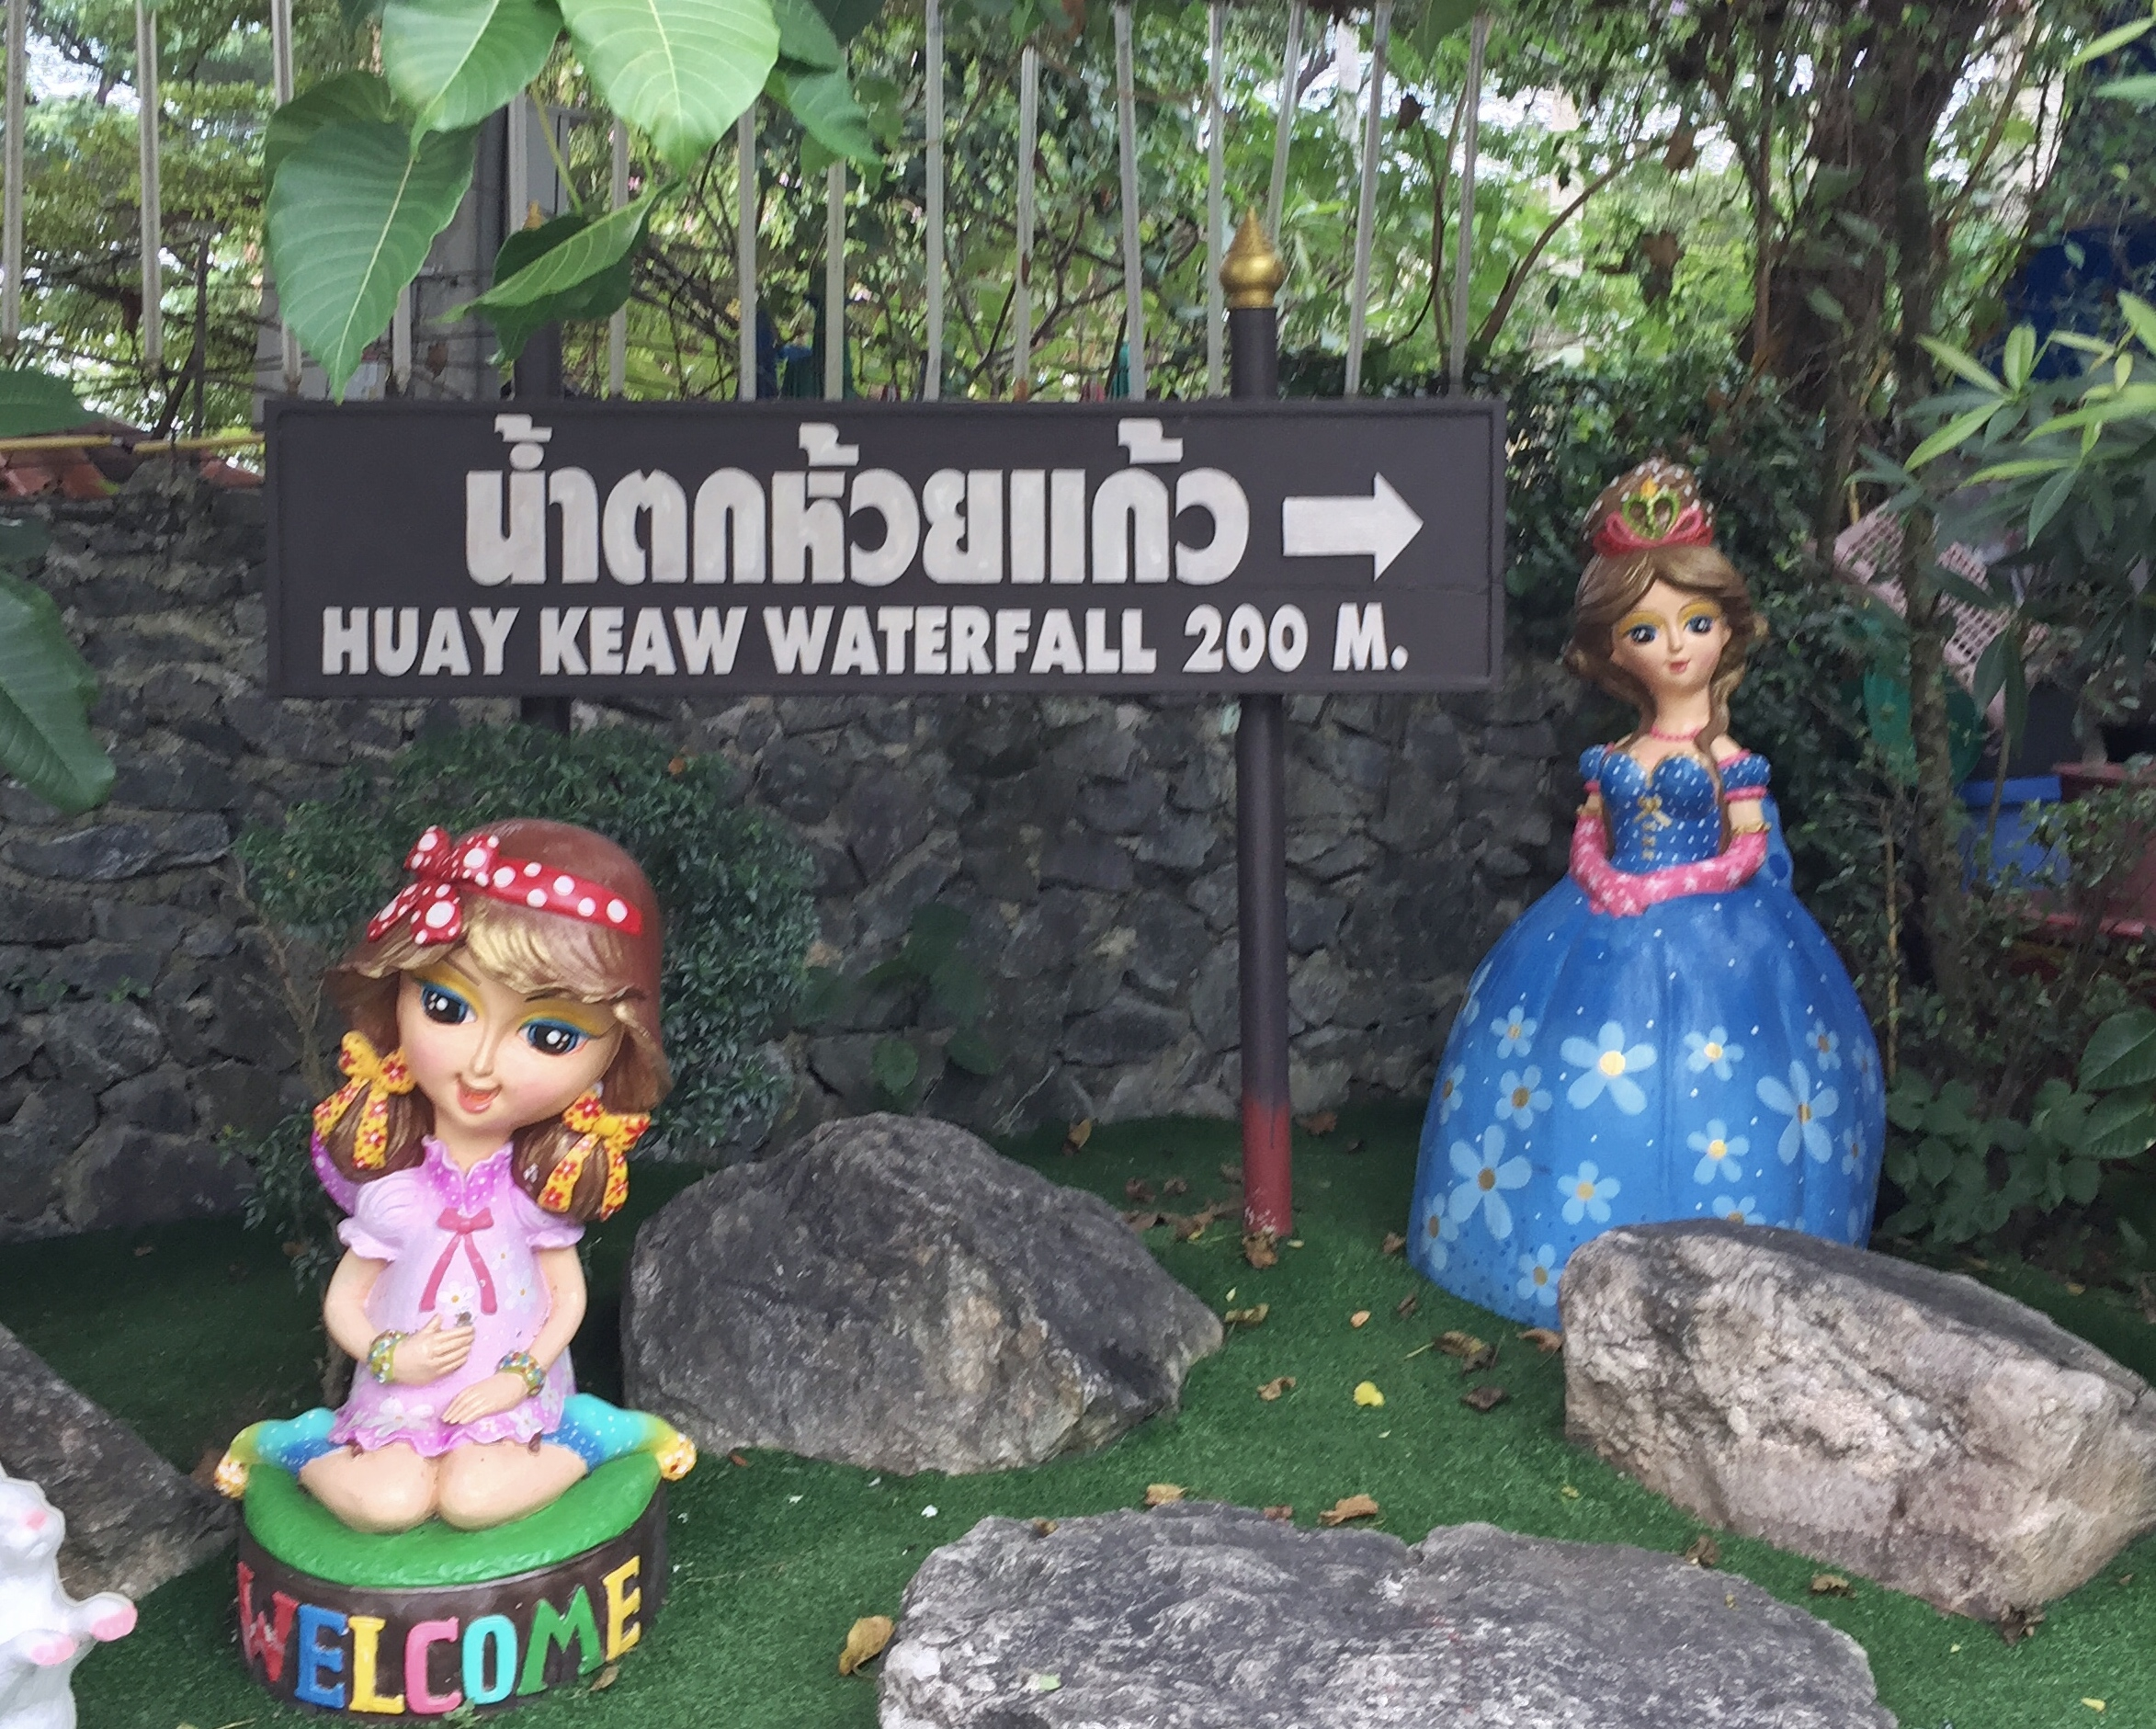 Huay Kaew Waterfall Entrance in Chiang Mai, Thailand. Only a 2 minute walk!